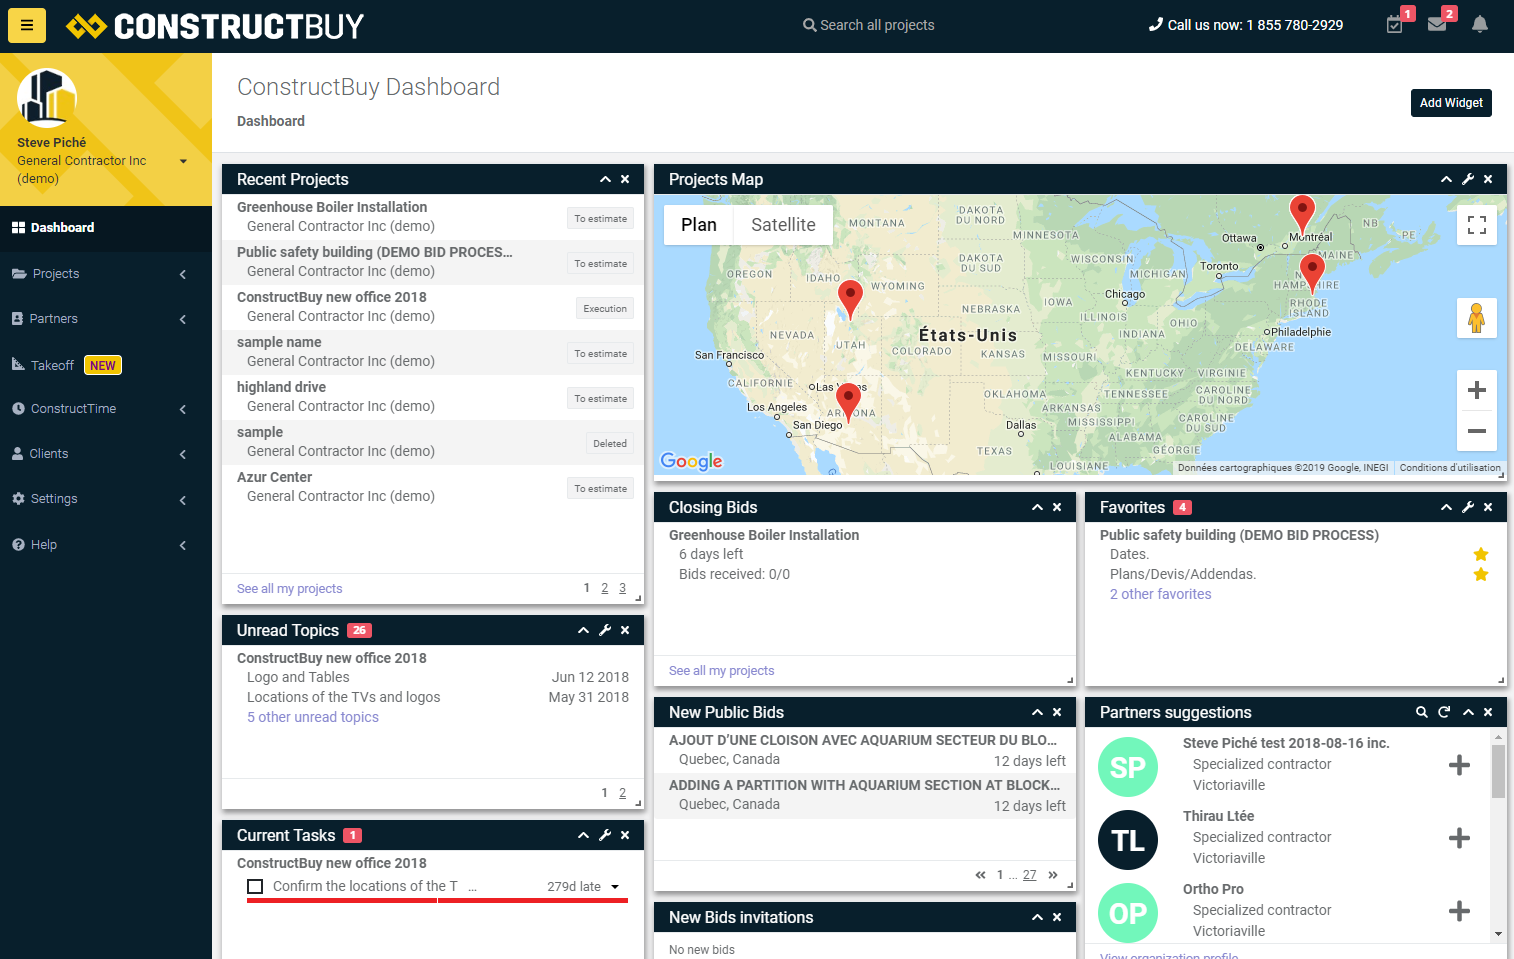 ConstructBuy offers collaborative tools to help you plan, estimate and execute your projects.